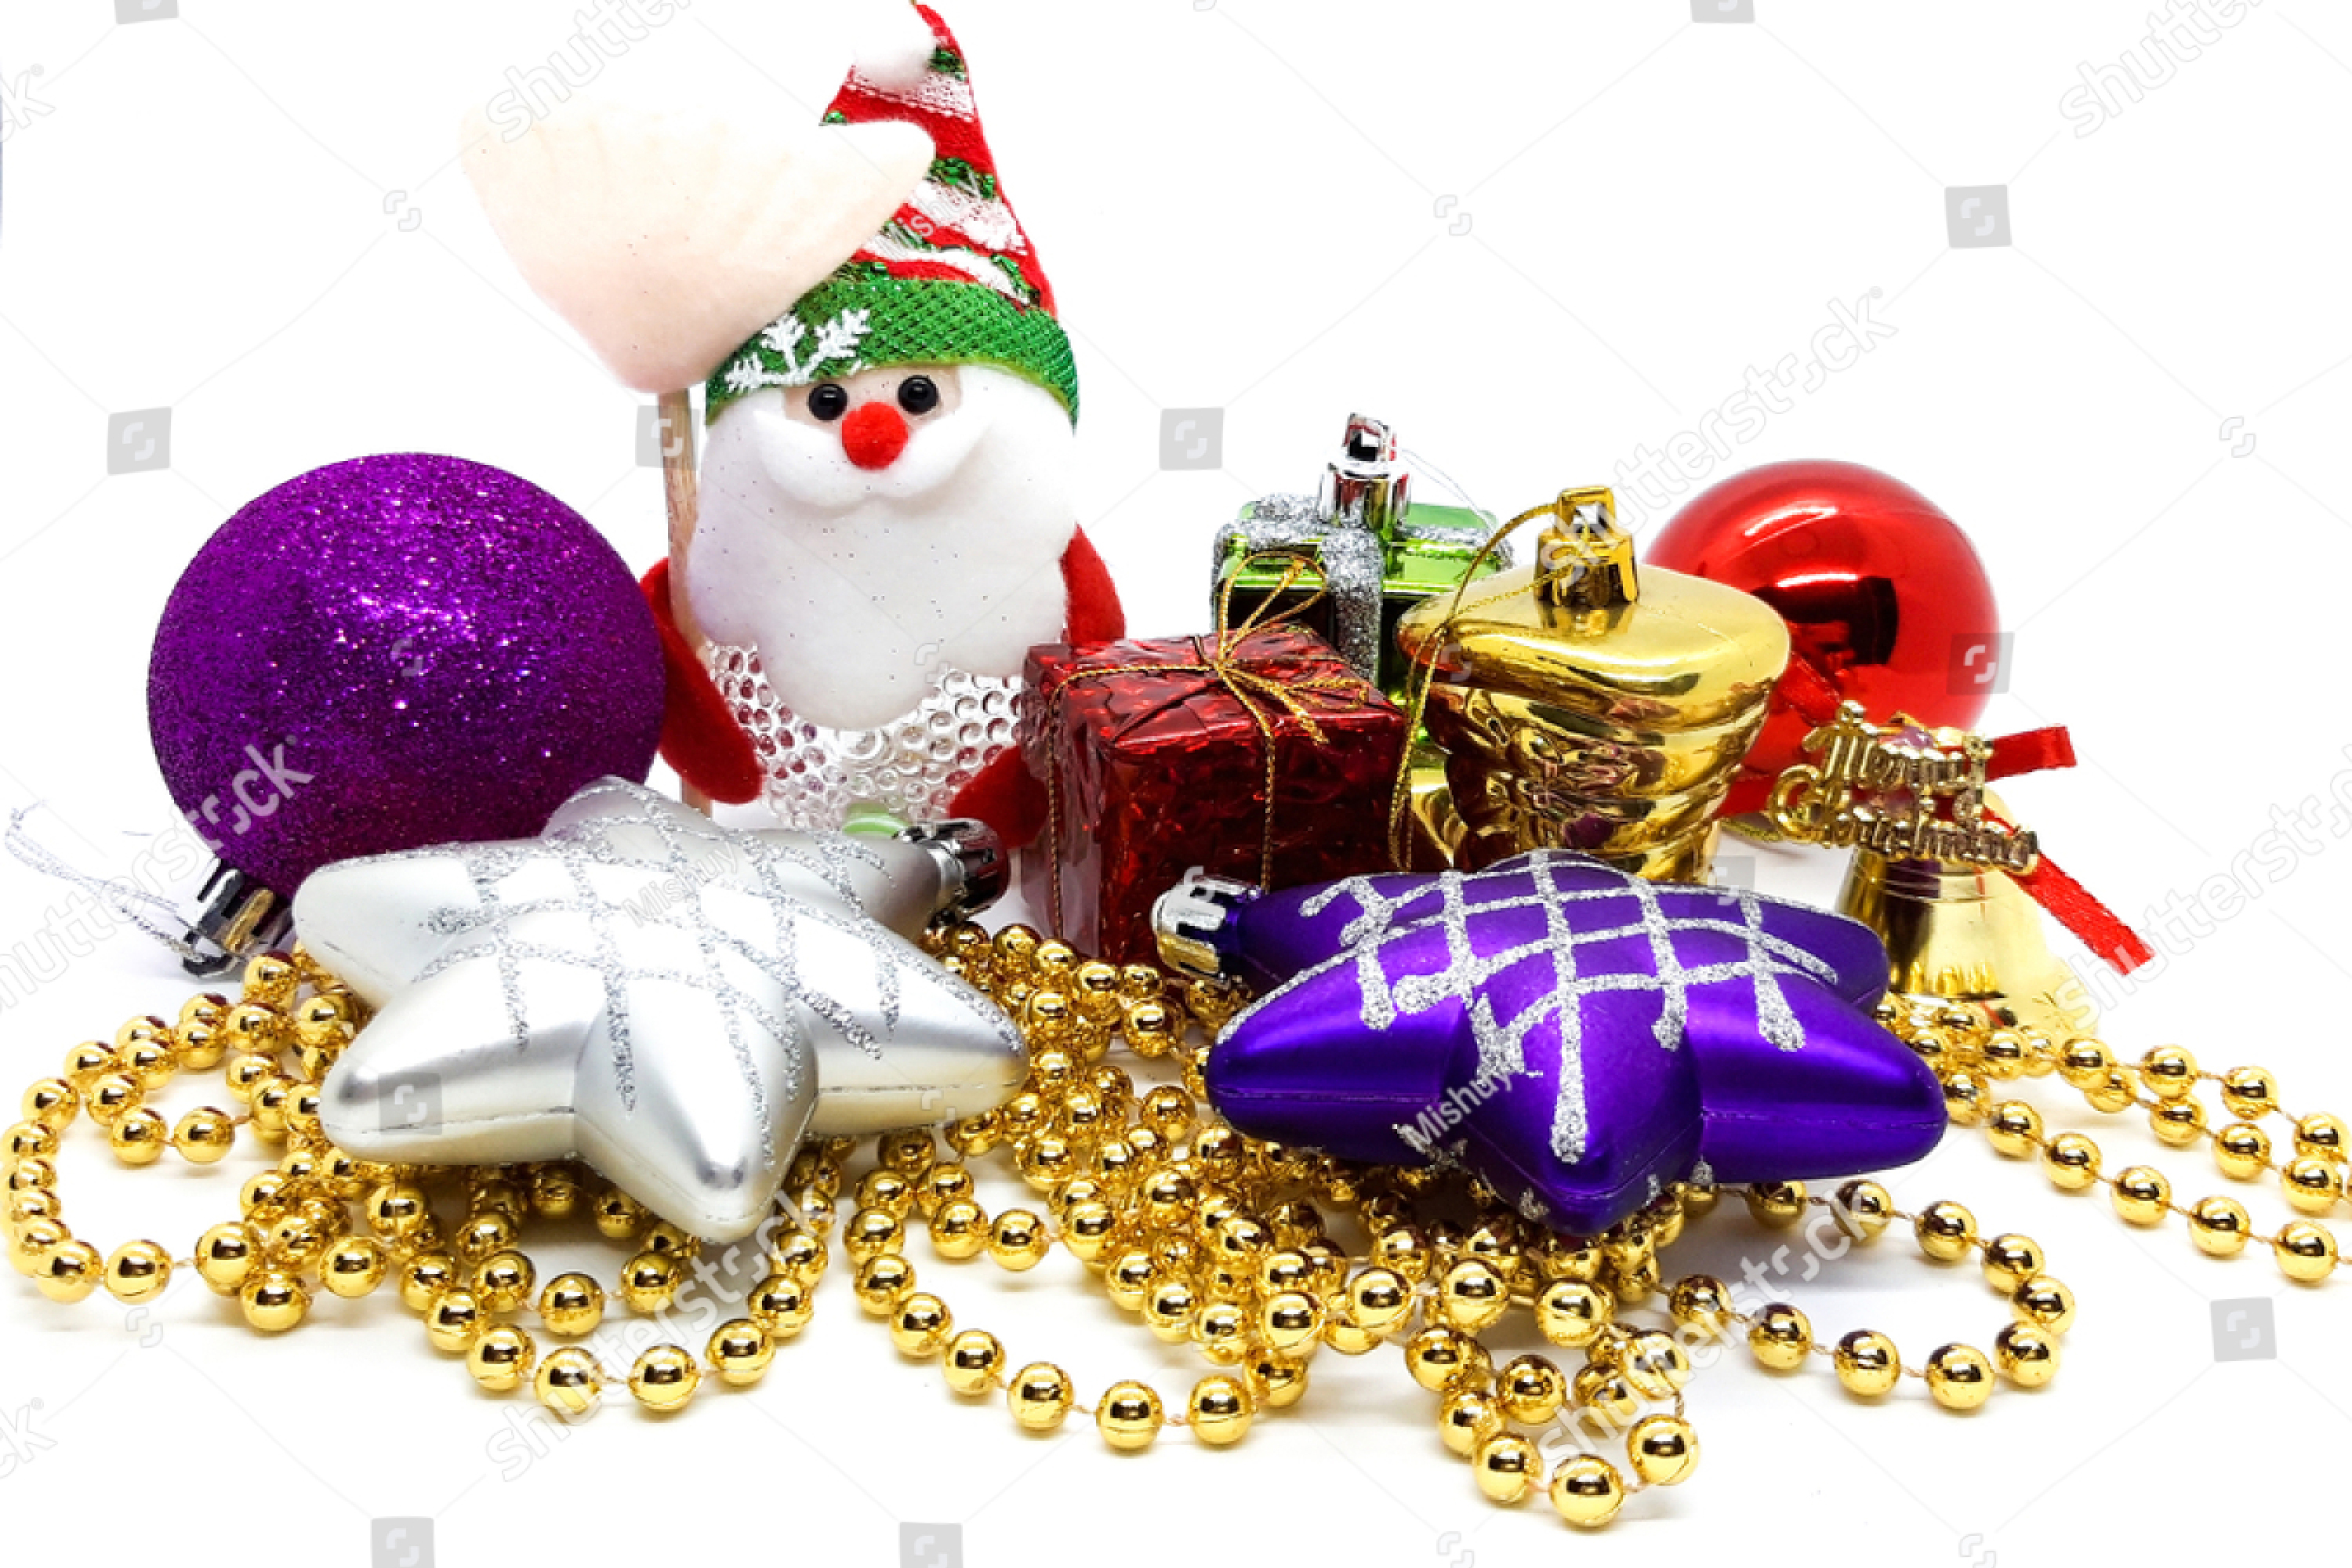 Colorful Christmas Ornaments example image 1